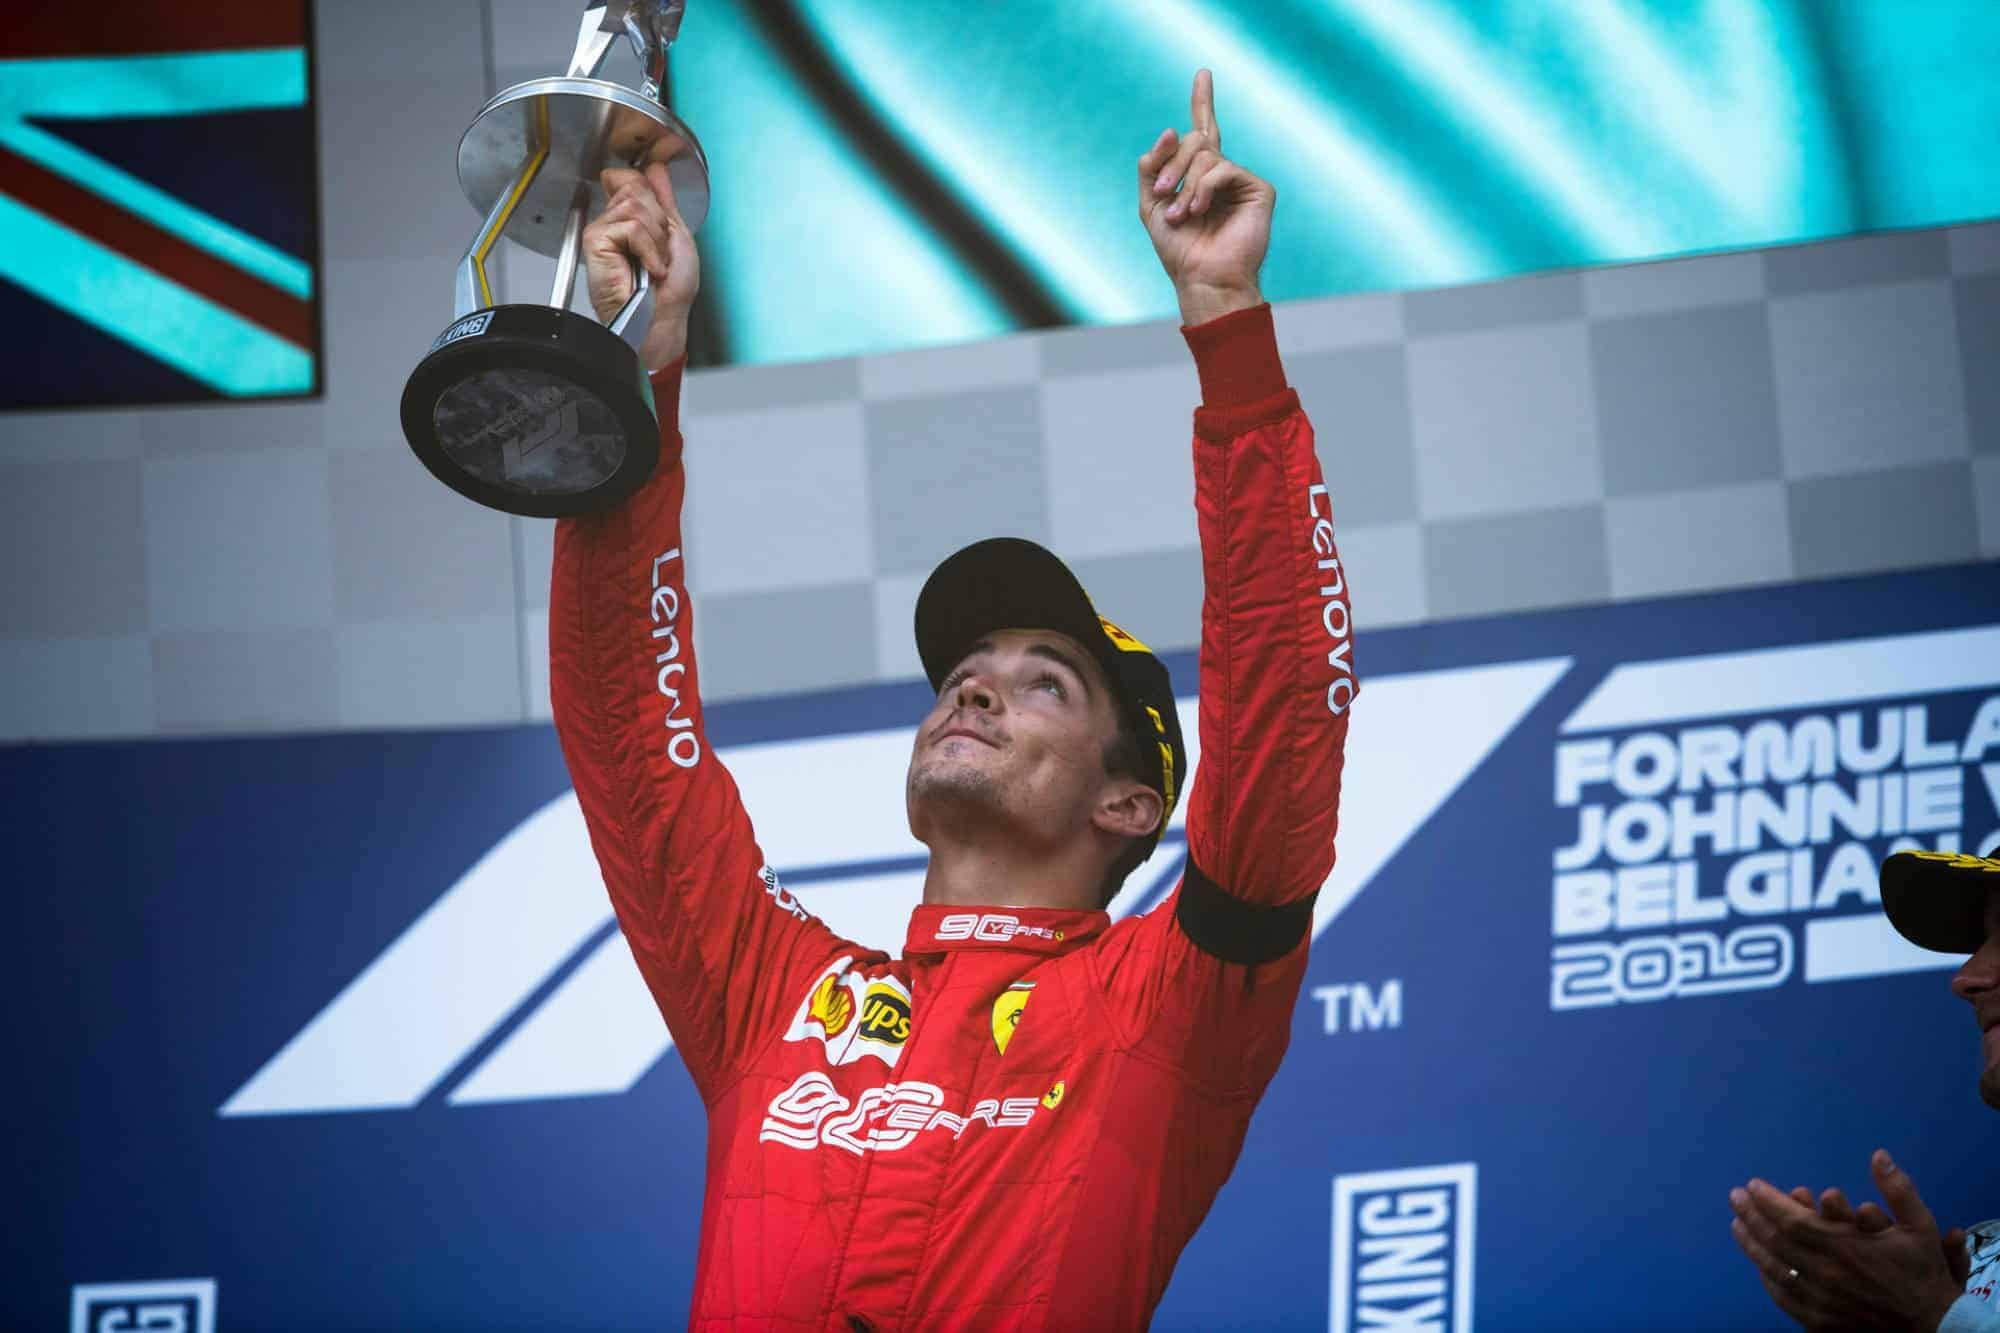 Charles Leclerc Ferrari Belgian GP F1 2019 on the podium Photo Ferrari